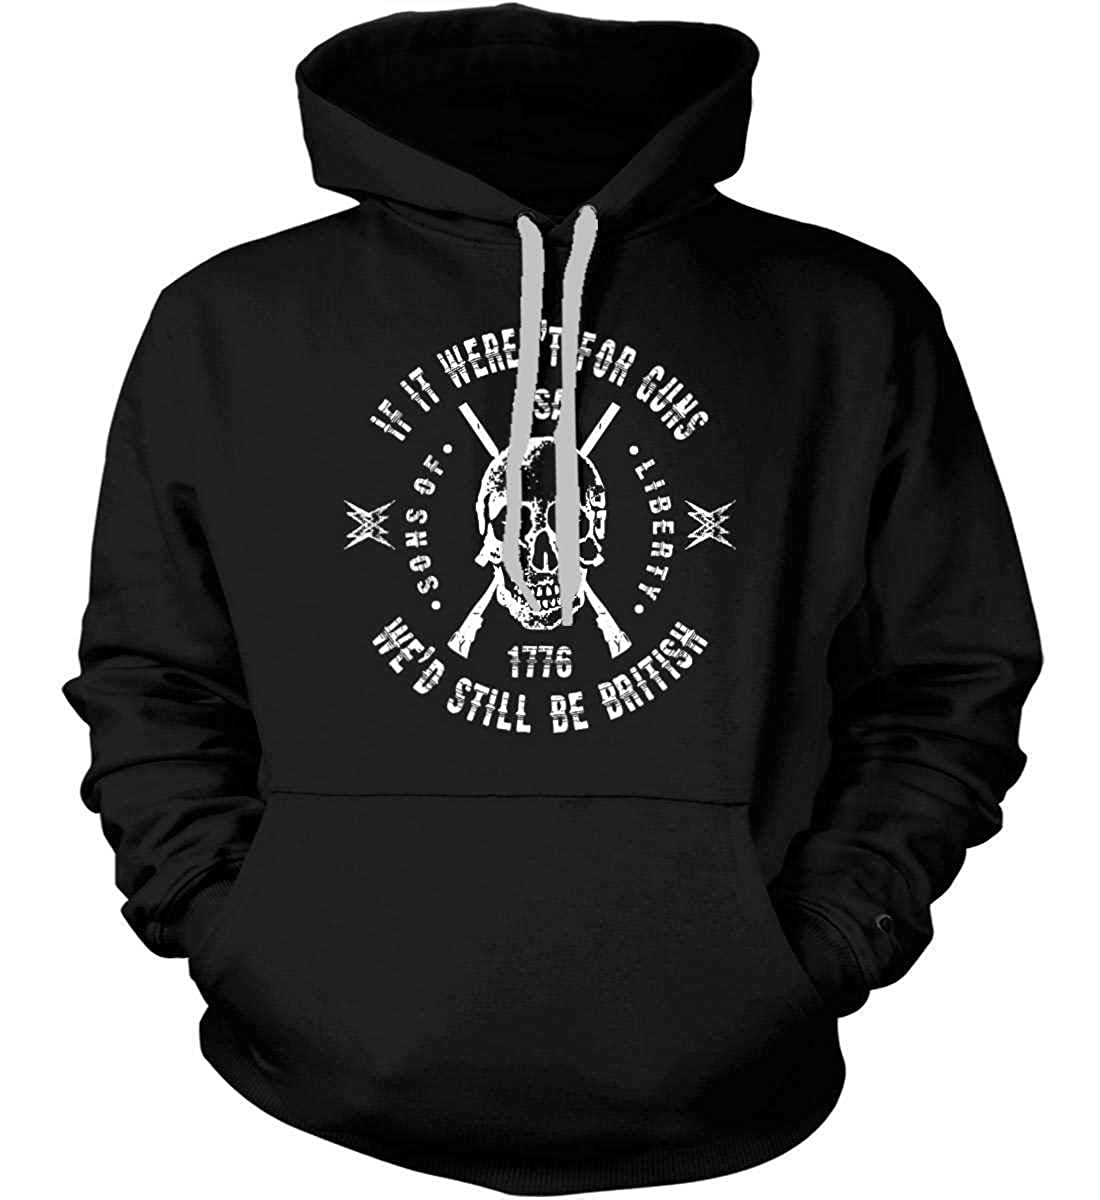 If it Werent for Guns Sons Of Liberty Hoodie Sweat. Wed Still be British